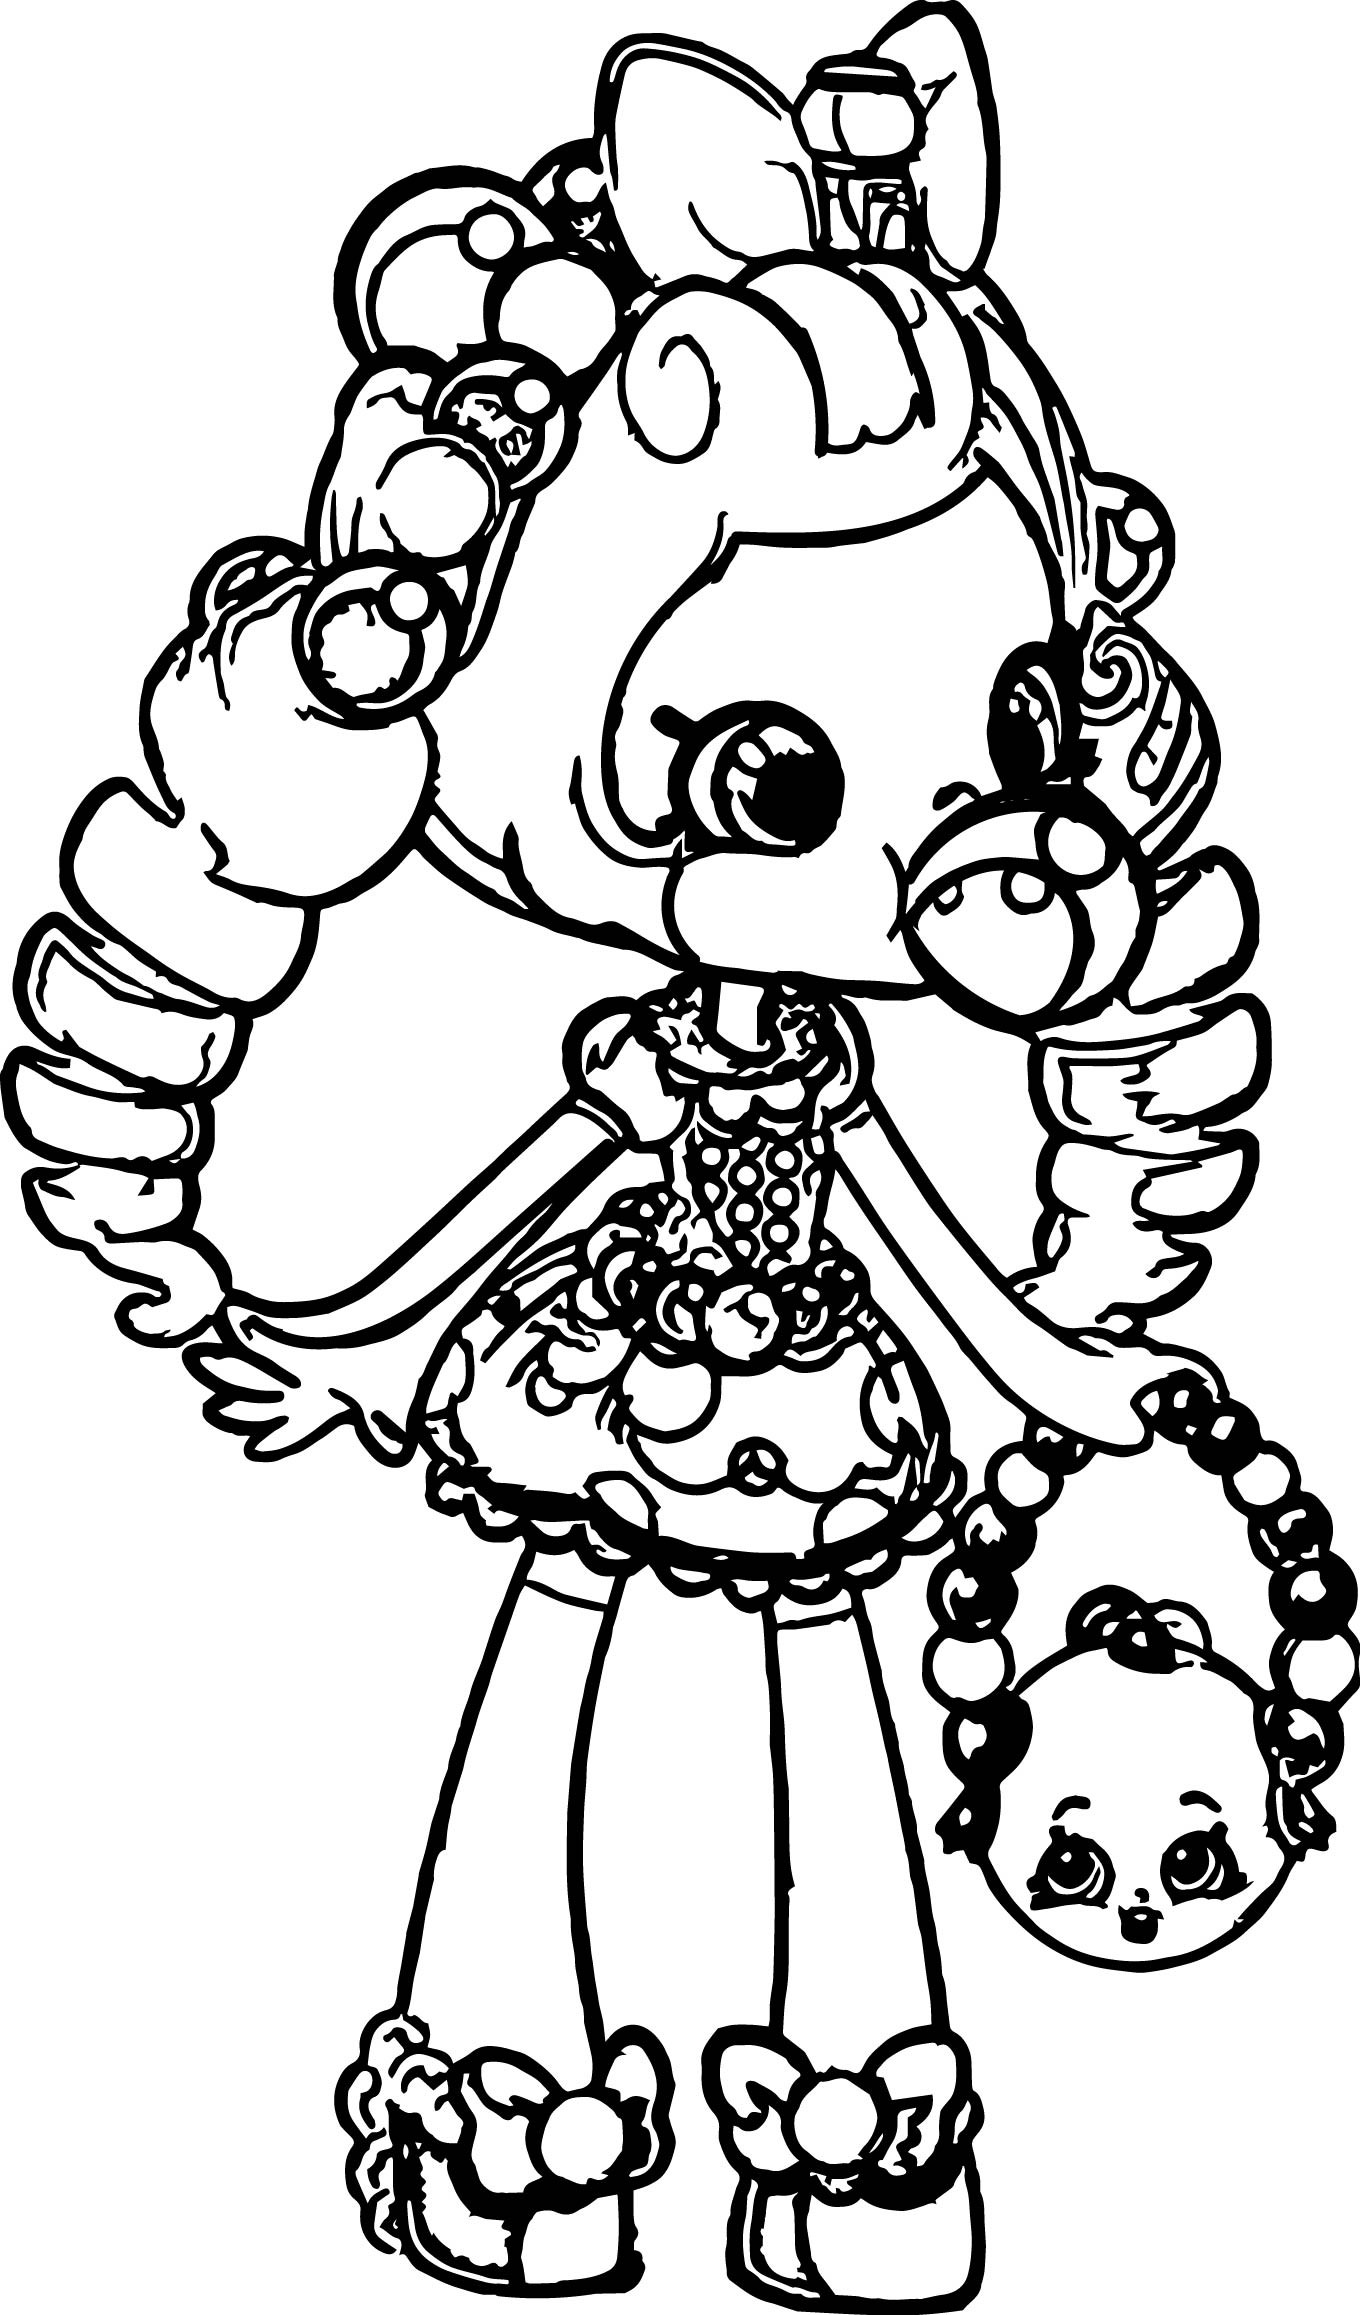 Best ideas about Coloring Pages For Girls Shopkins . Save or Pin Shopkins Balloon Girl Coloring Page Now.